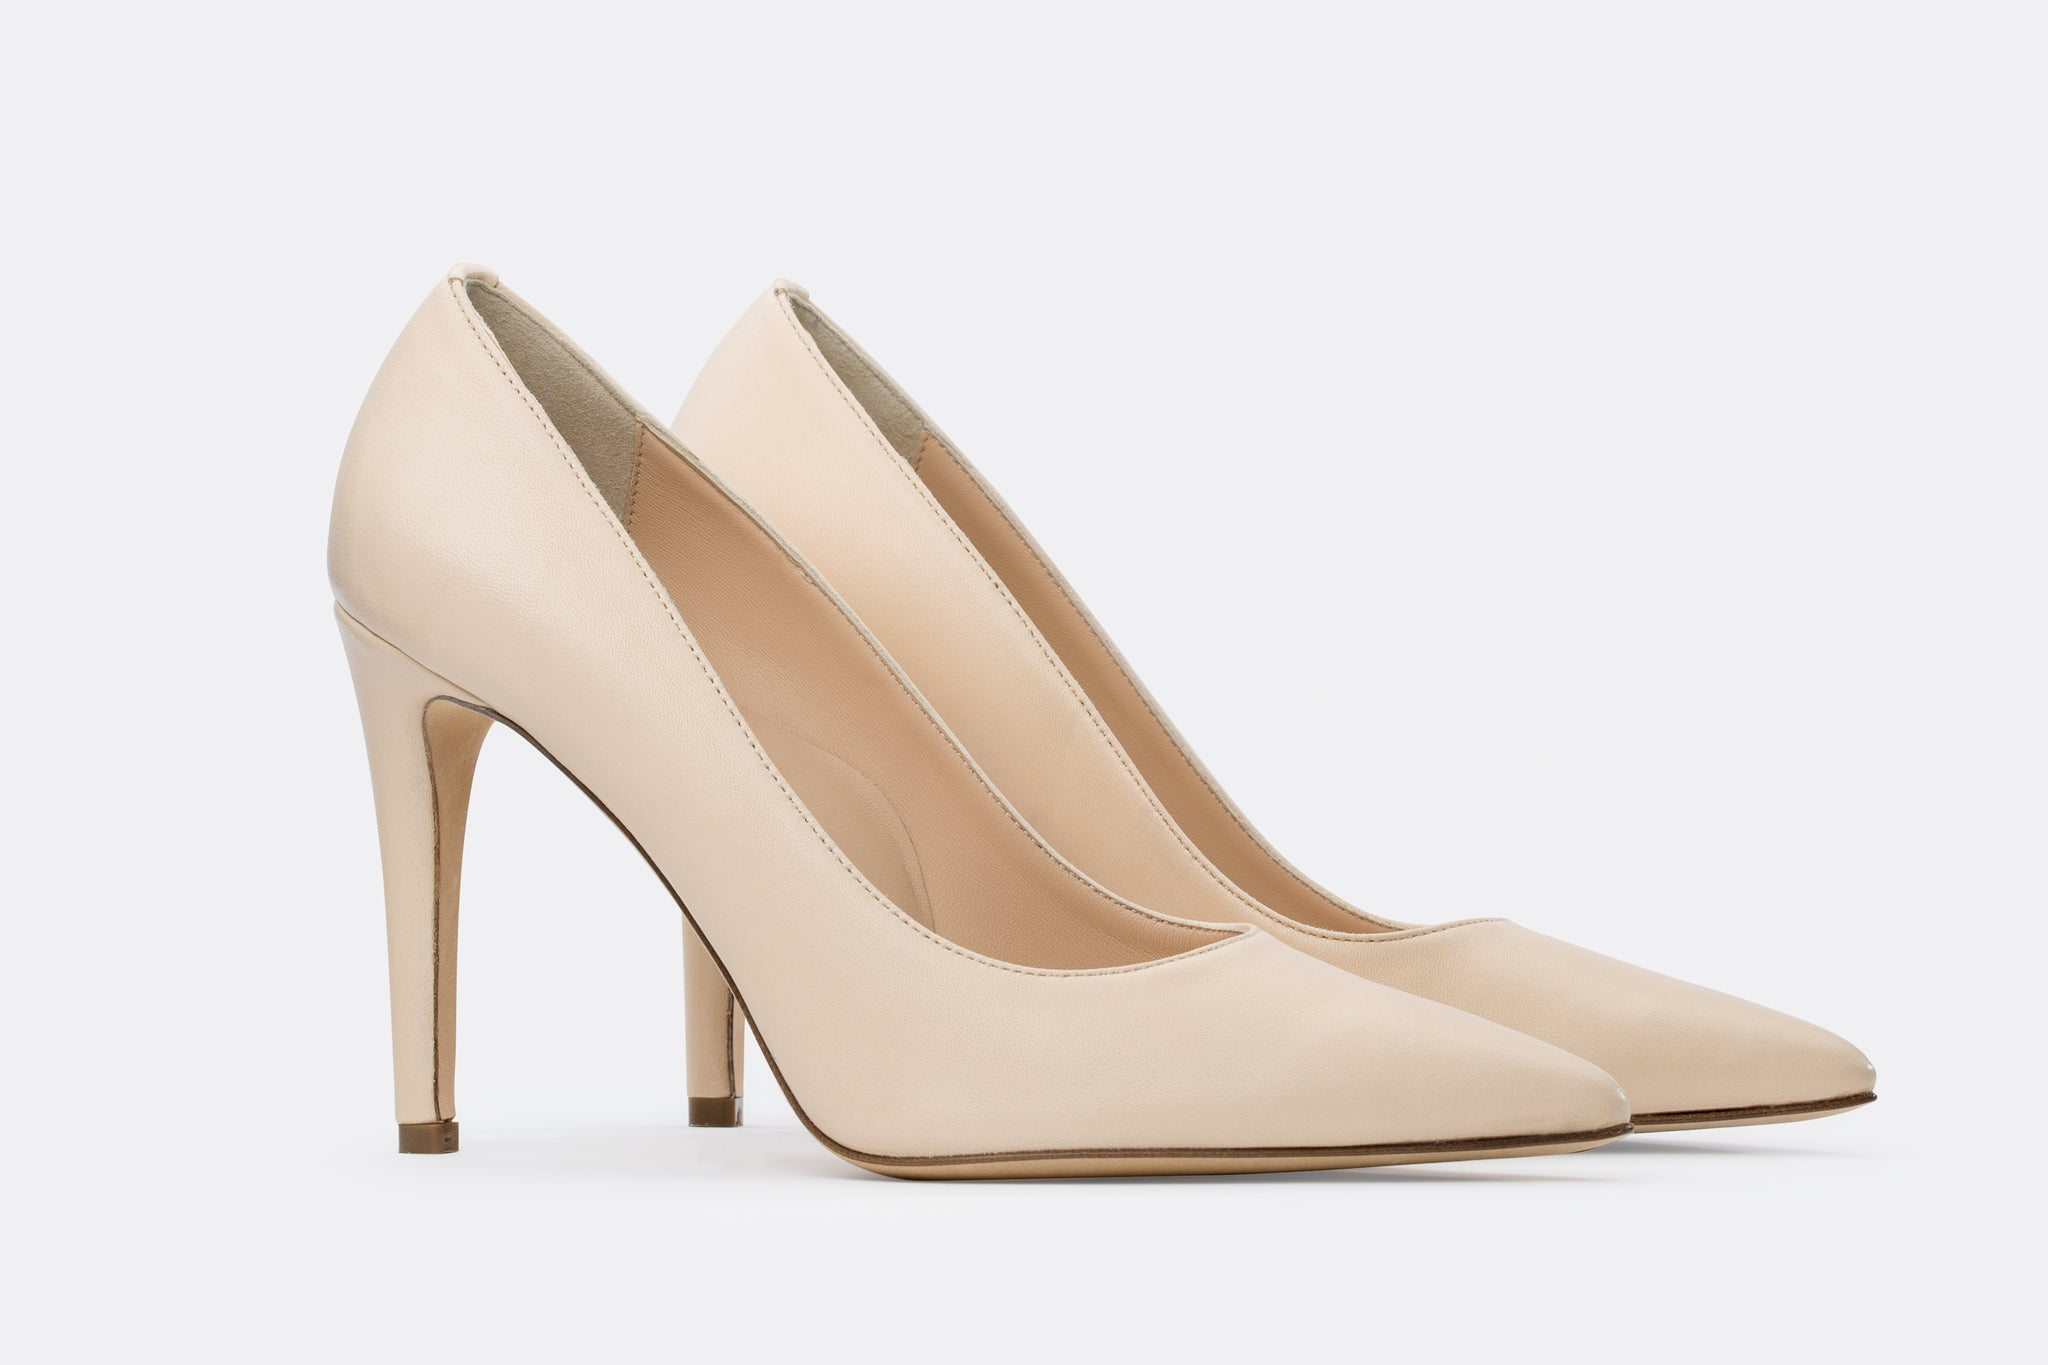 LIGHT BEIGE NAPPA LEATHER ALICIA PUMP